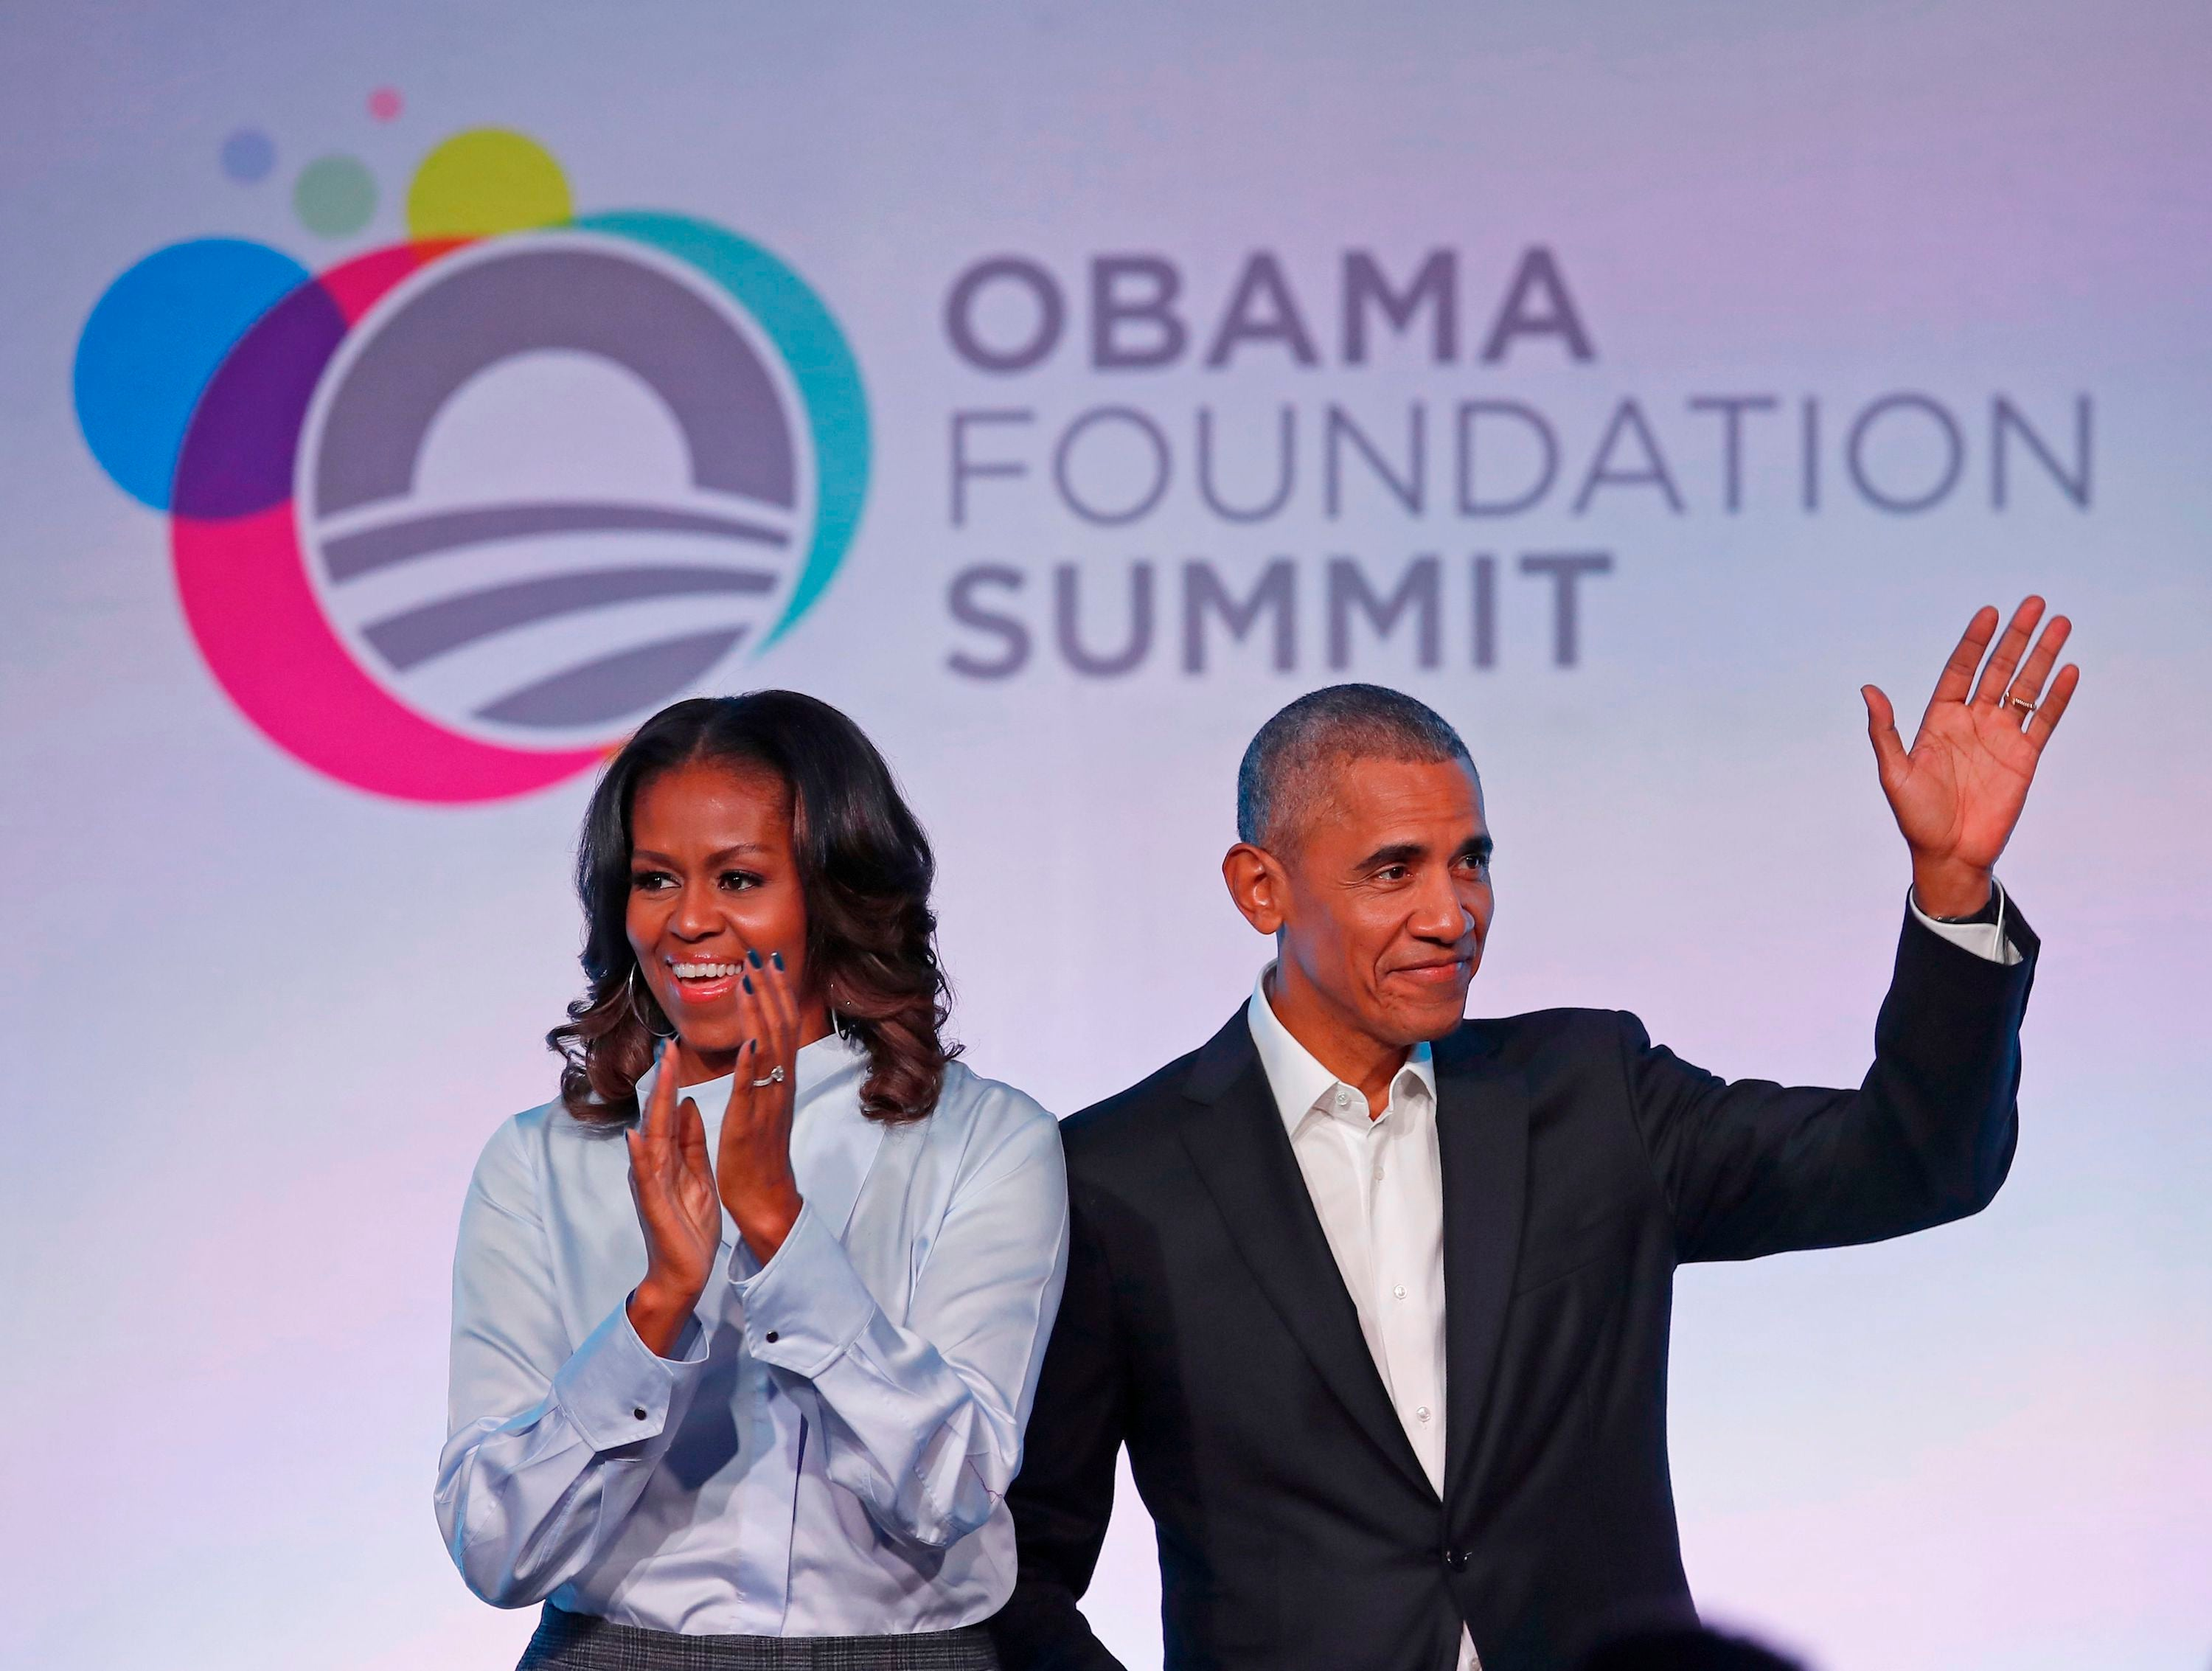 Obama has been holding class through his Obama Foundation Summits